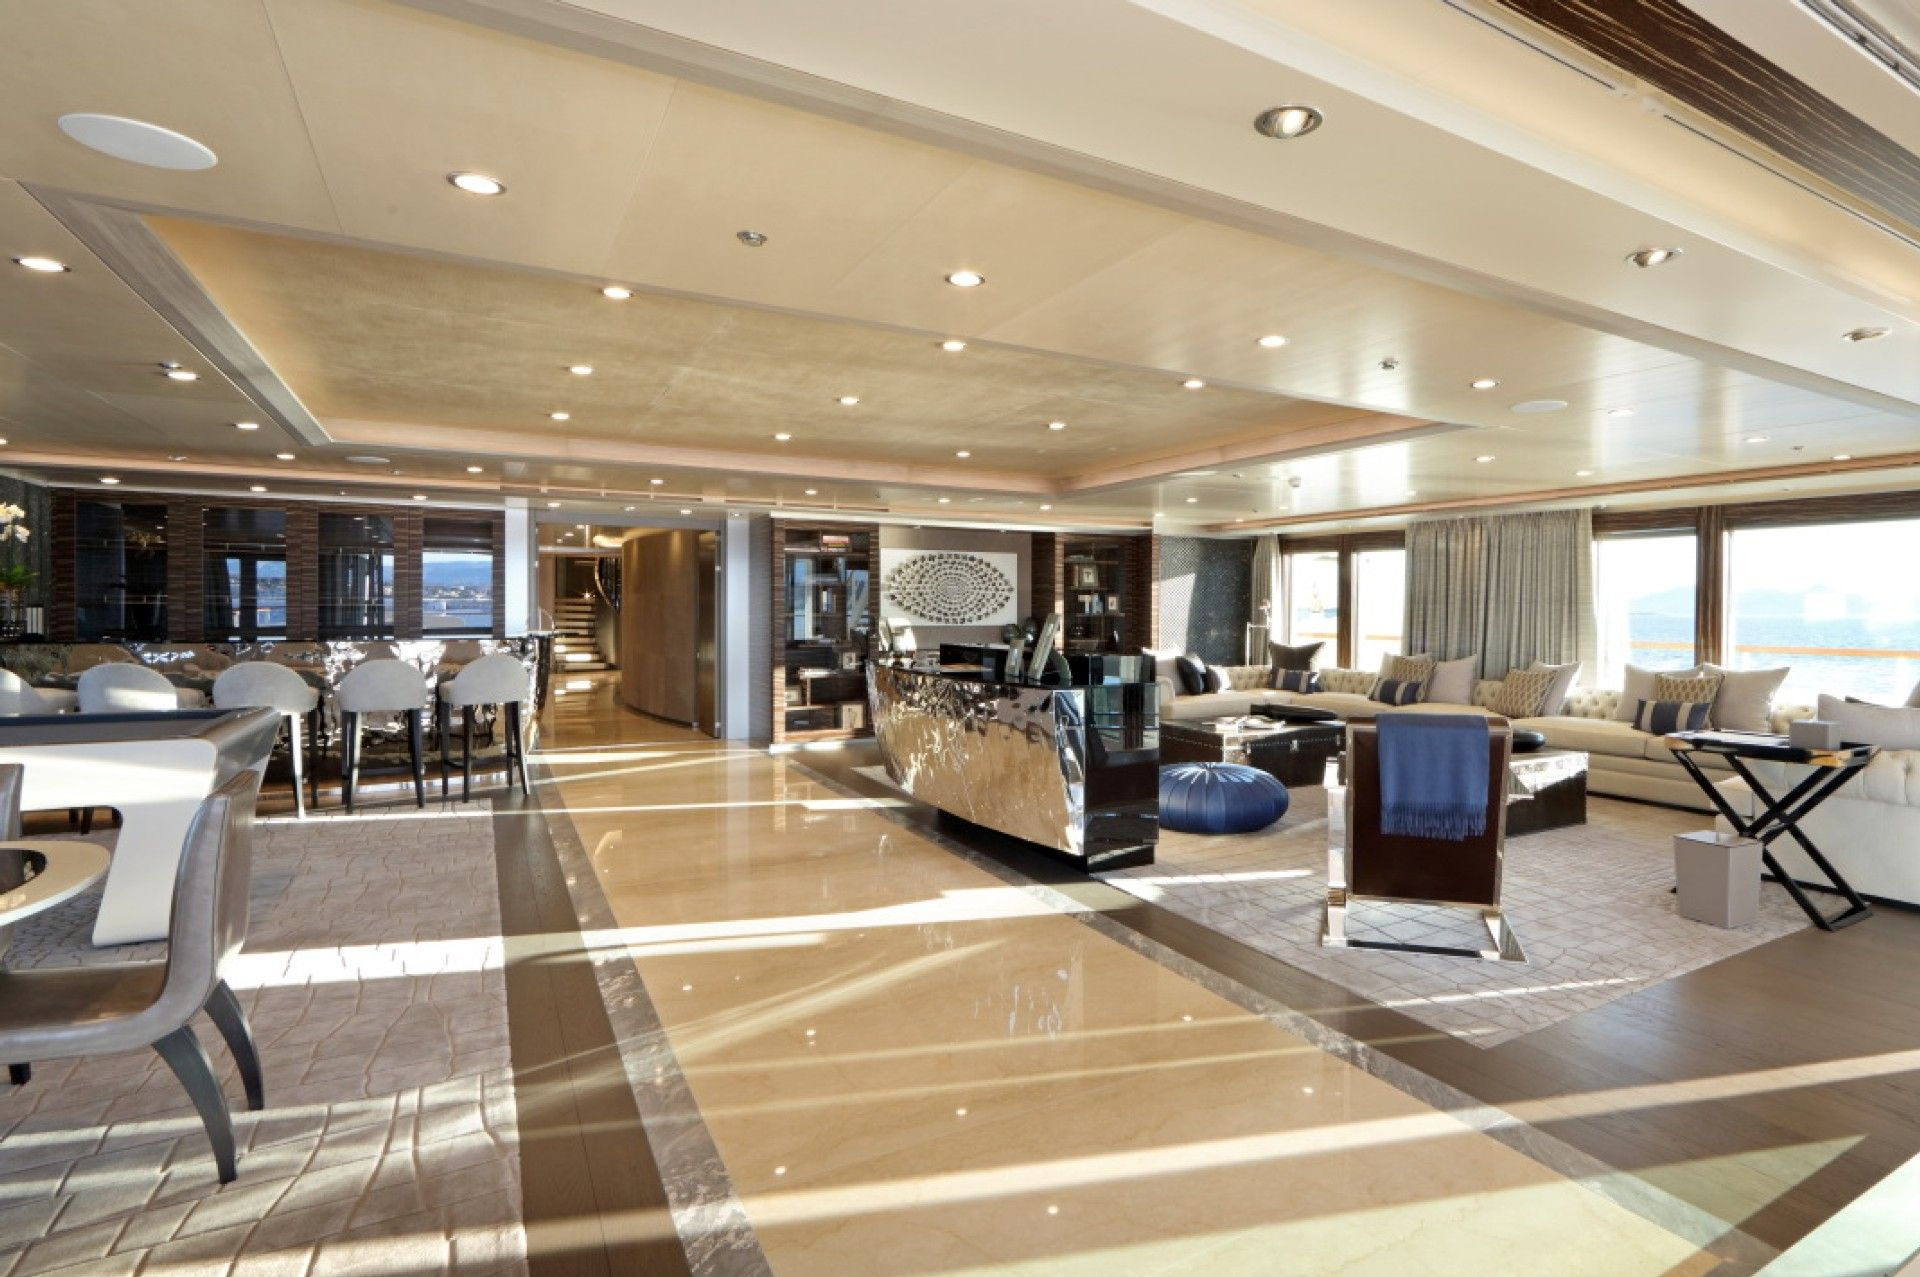 BOAT DECK ULYSSES YACHT | Official Website PHOTOGRAPHY ...